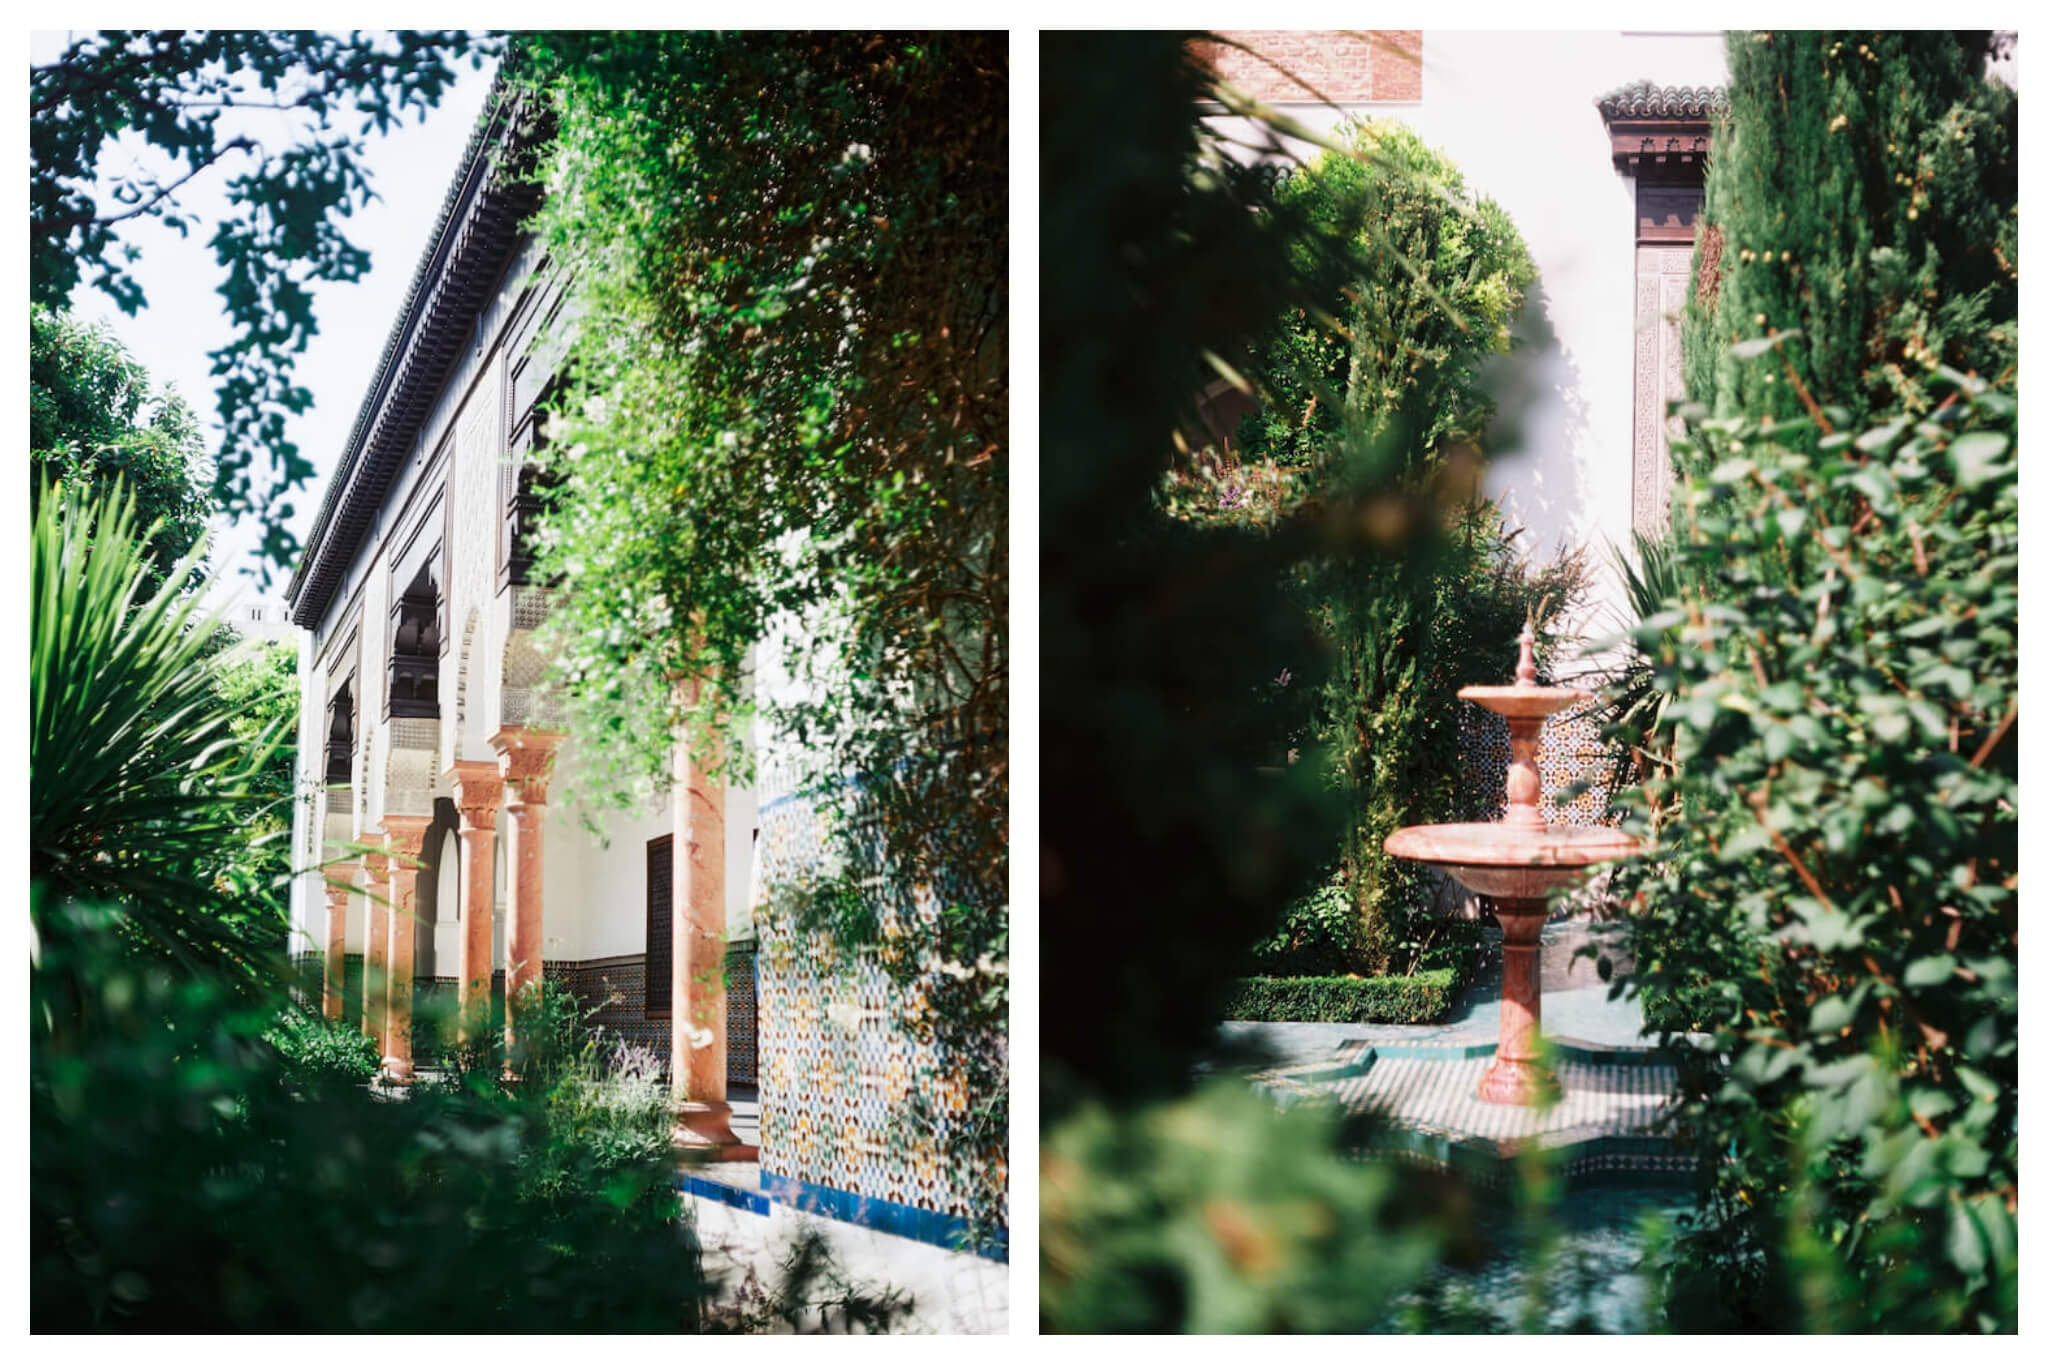 The beautiful Grande Mosquée de Paris, white and tiled, shines between plants on a sunny afternoon in Paris.